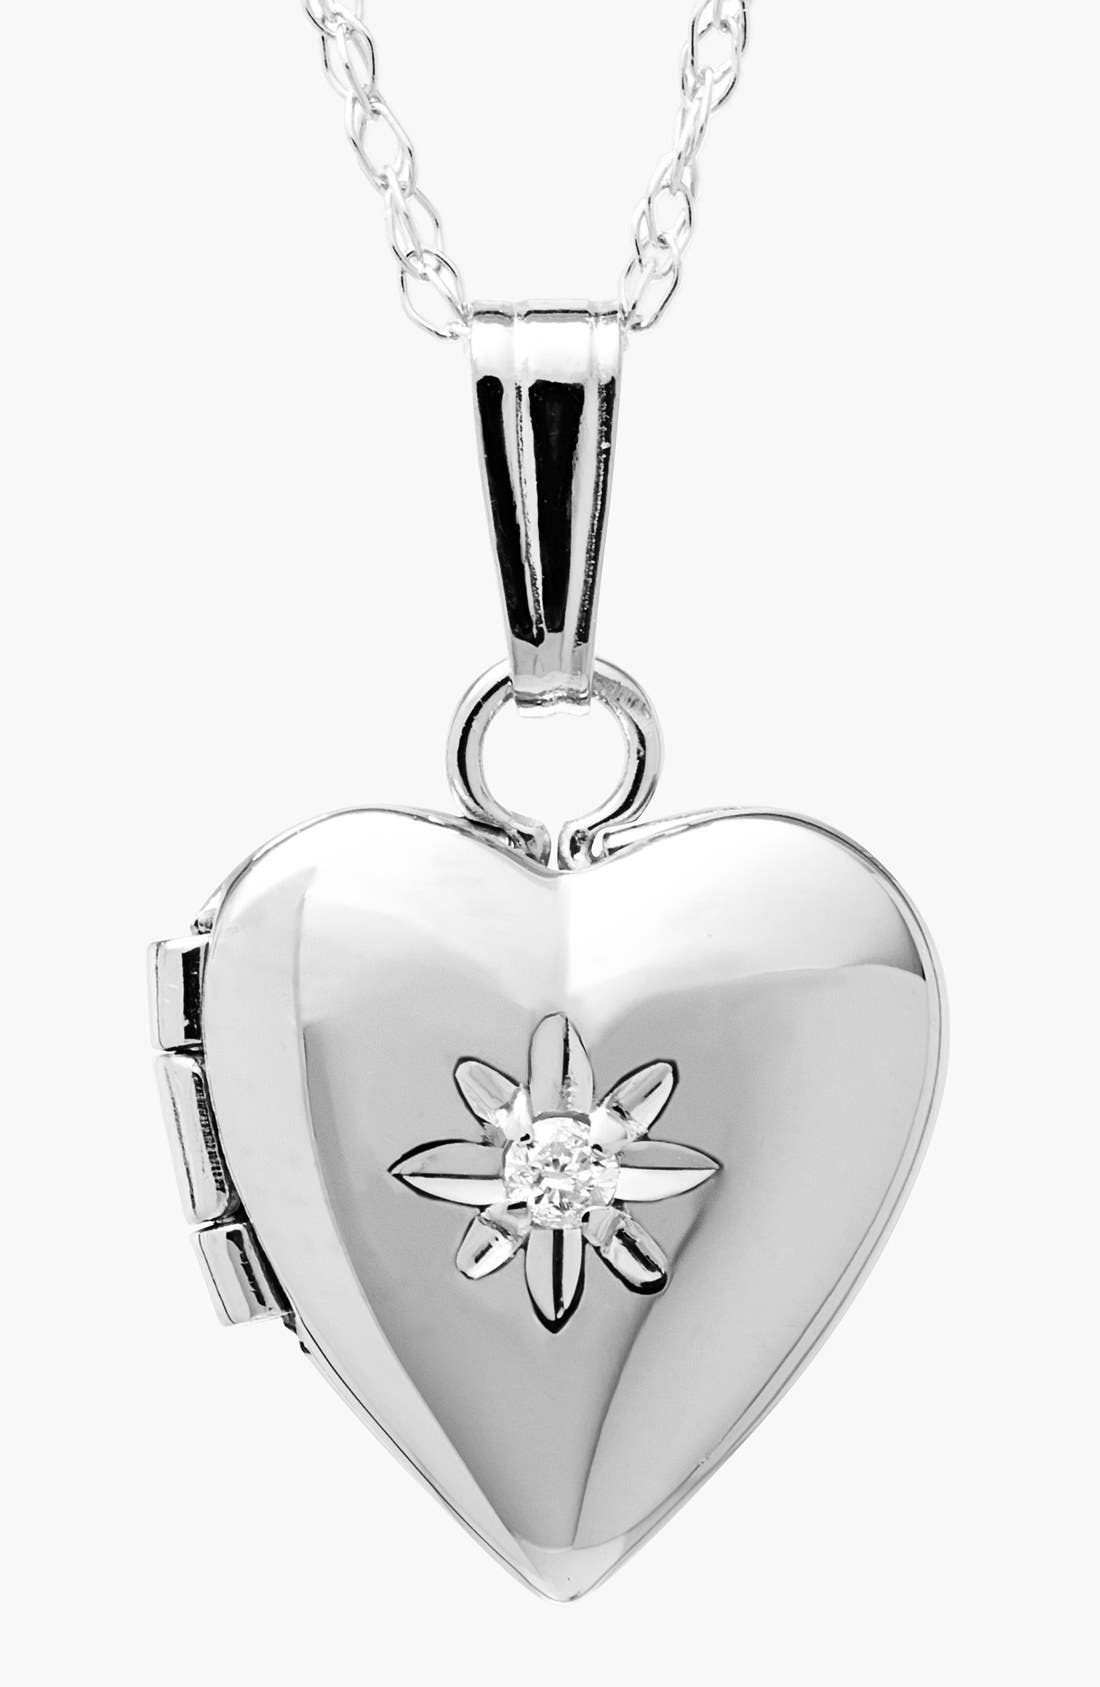 MIGNONETTE 14k White Gold Heart Locket Necklace